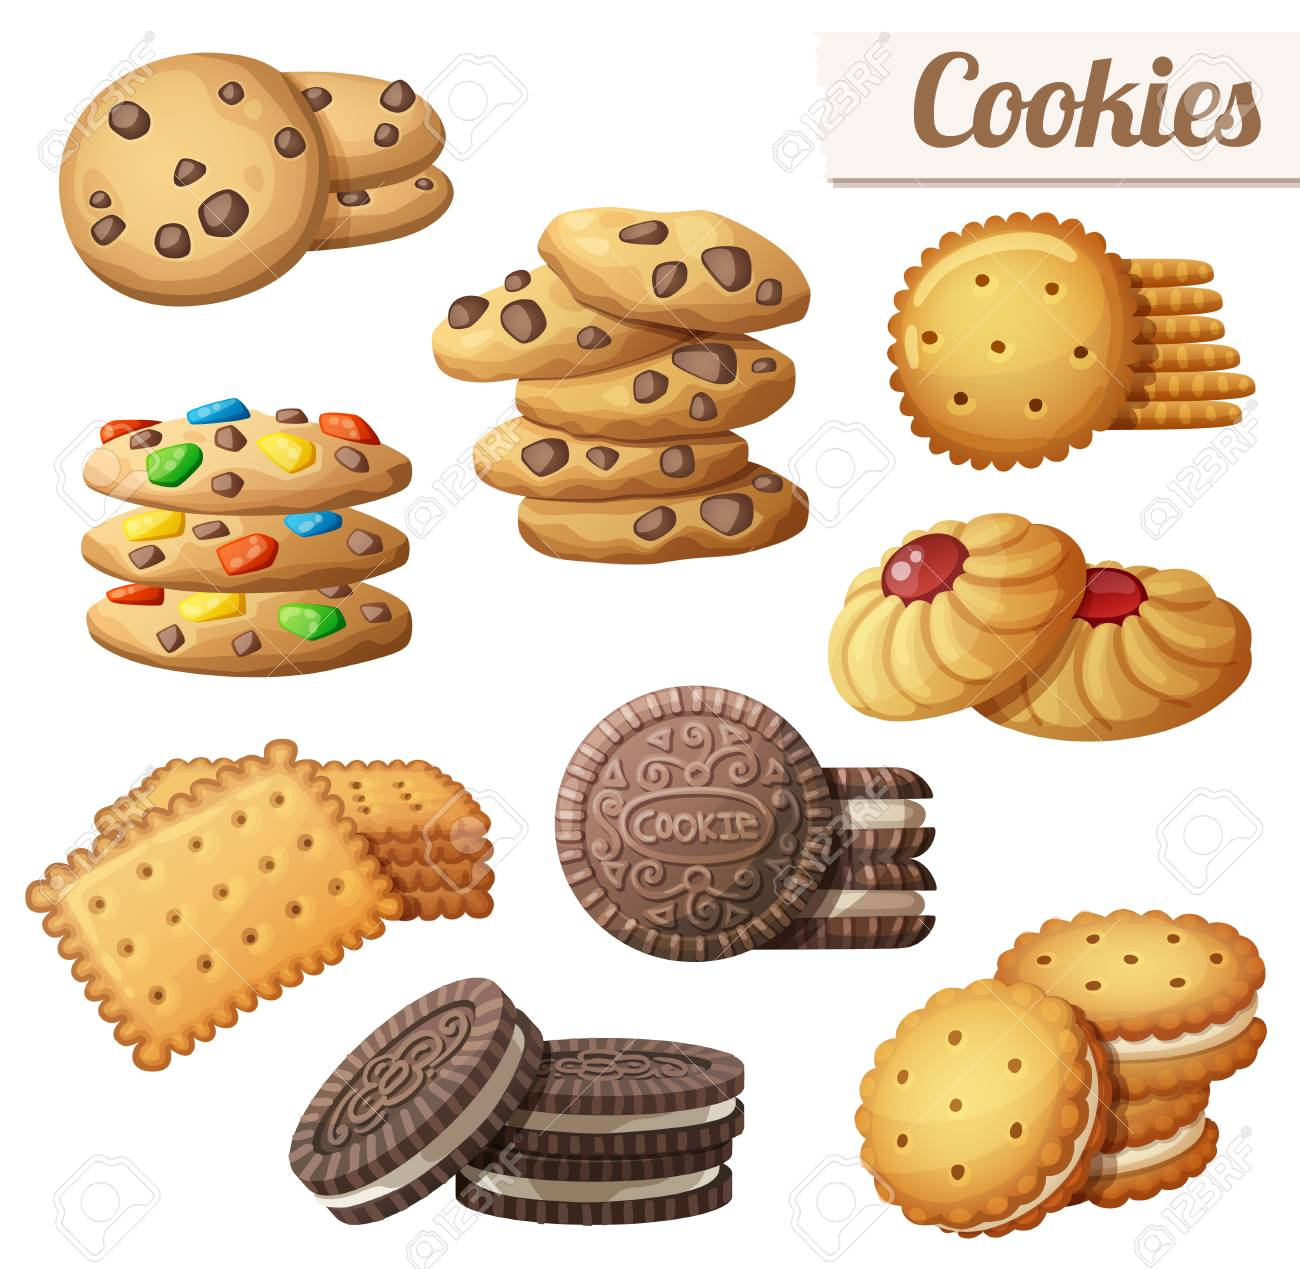 Cookies. Set of cartoon vector food icons isolated on white background - 95208512